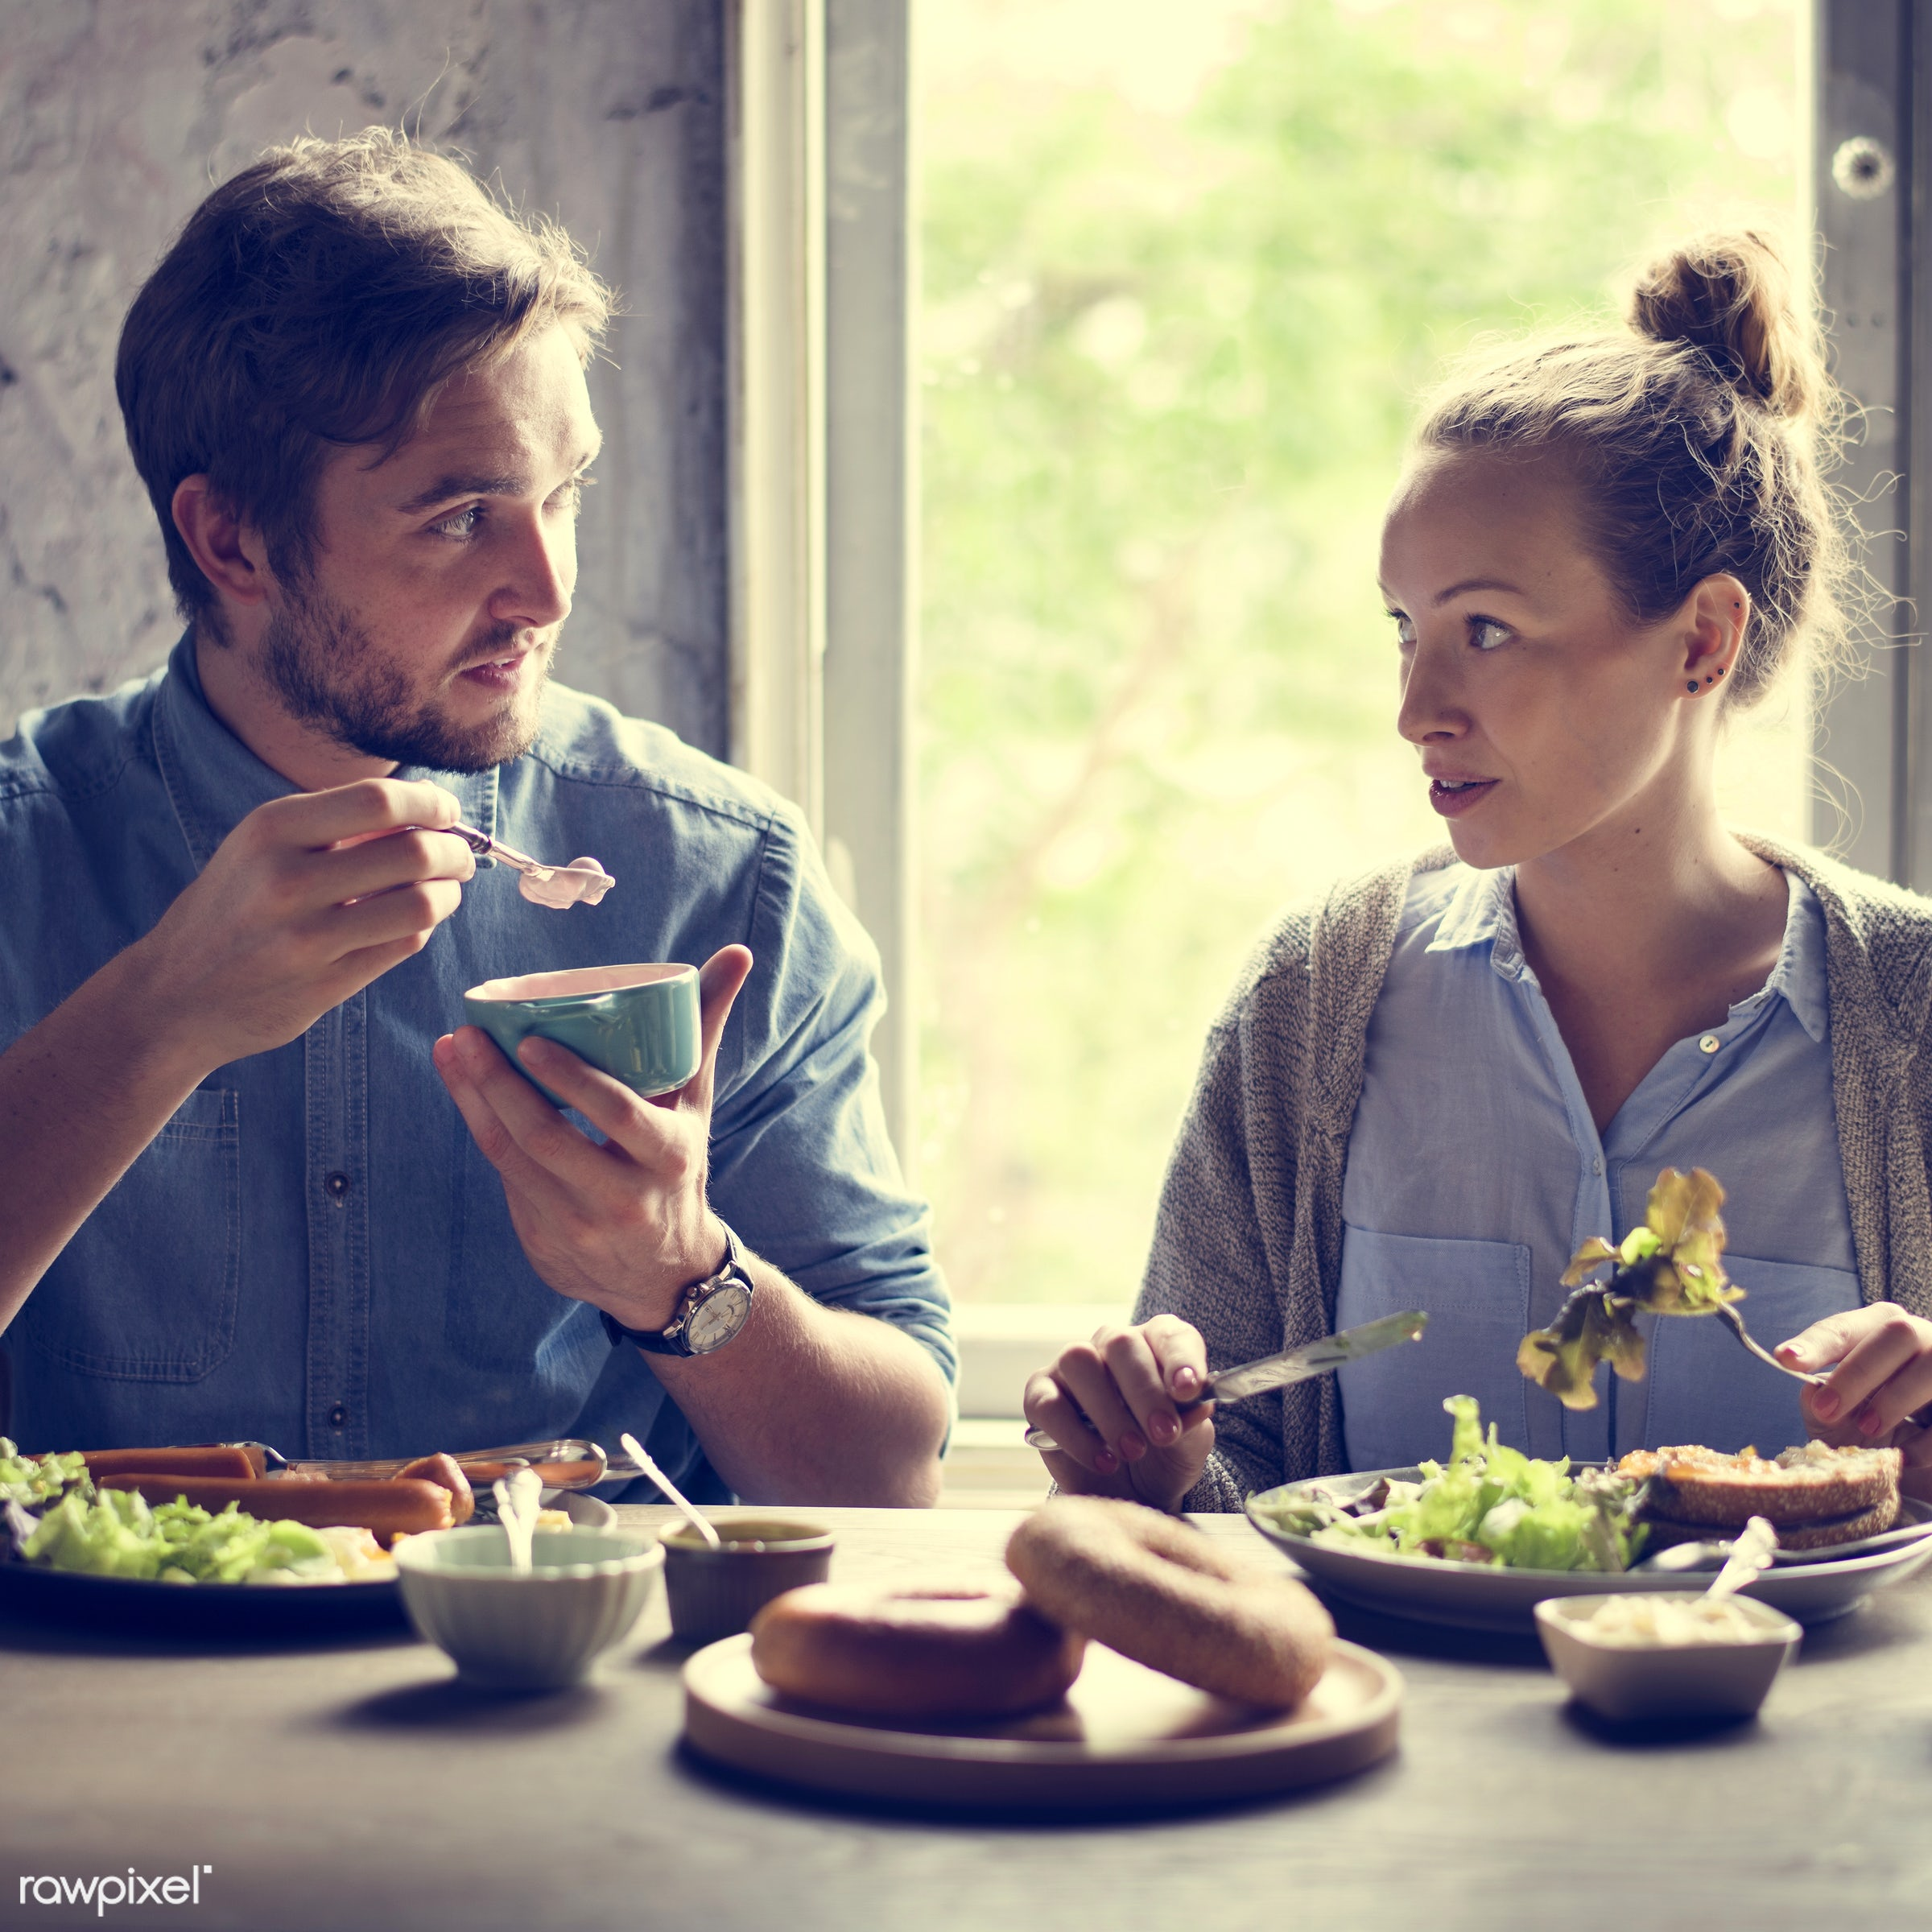 expression, person, recipe, cuisine, appetite, people, taste, together, caucasian, friends, woman, gather, candles,...